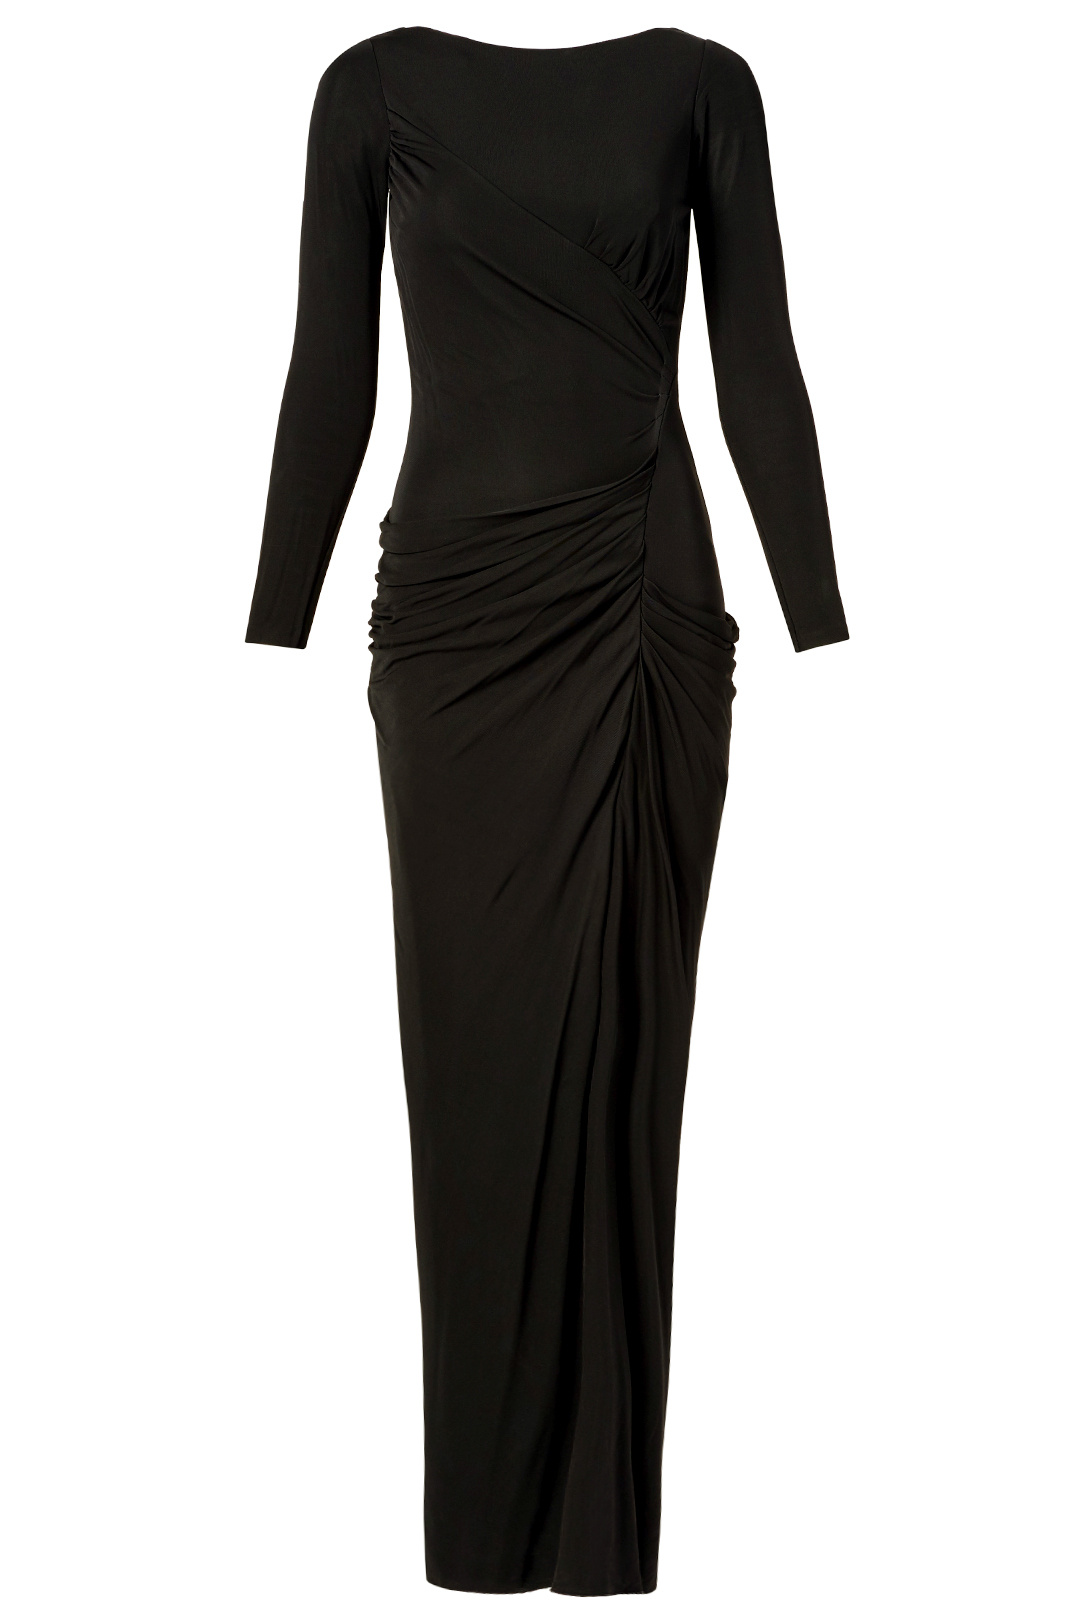 Badgley Mischka Black Ruched Women's US Size 2 Long Sleeve Gown Dress $935- #884